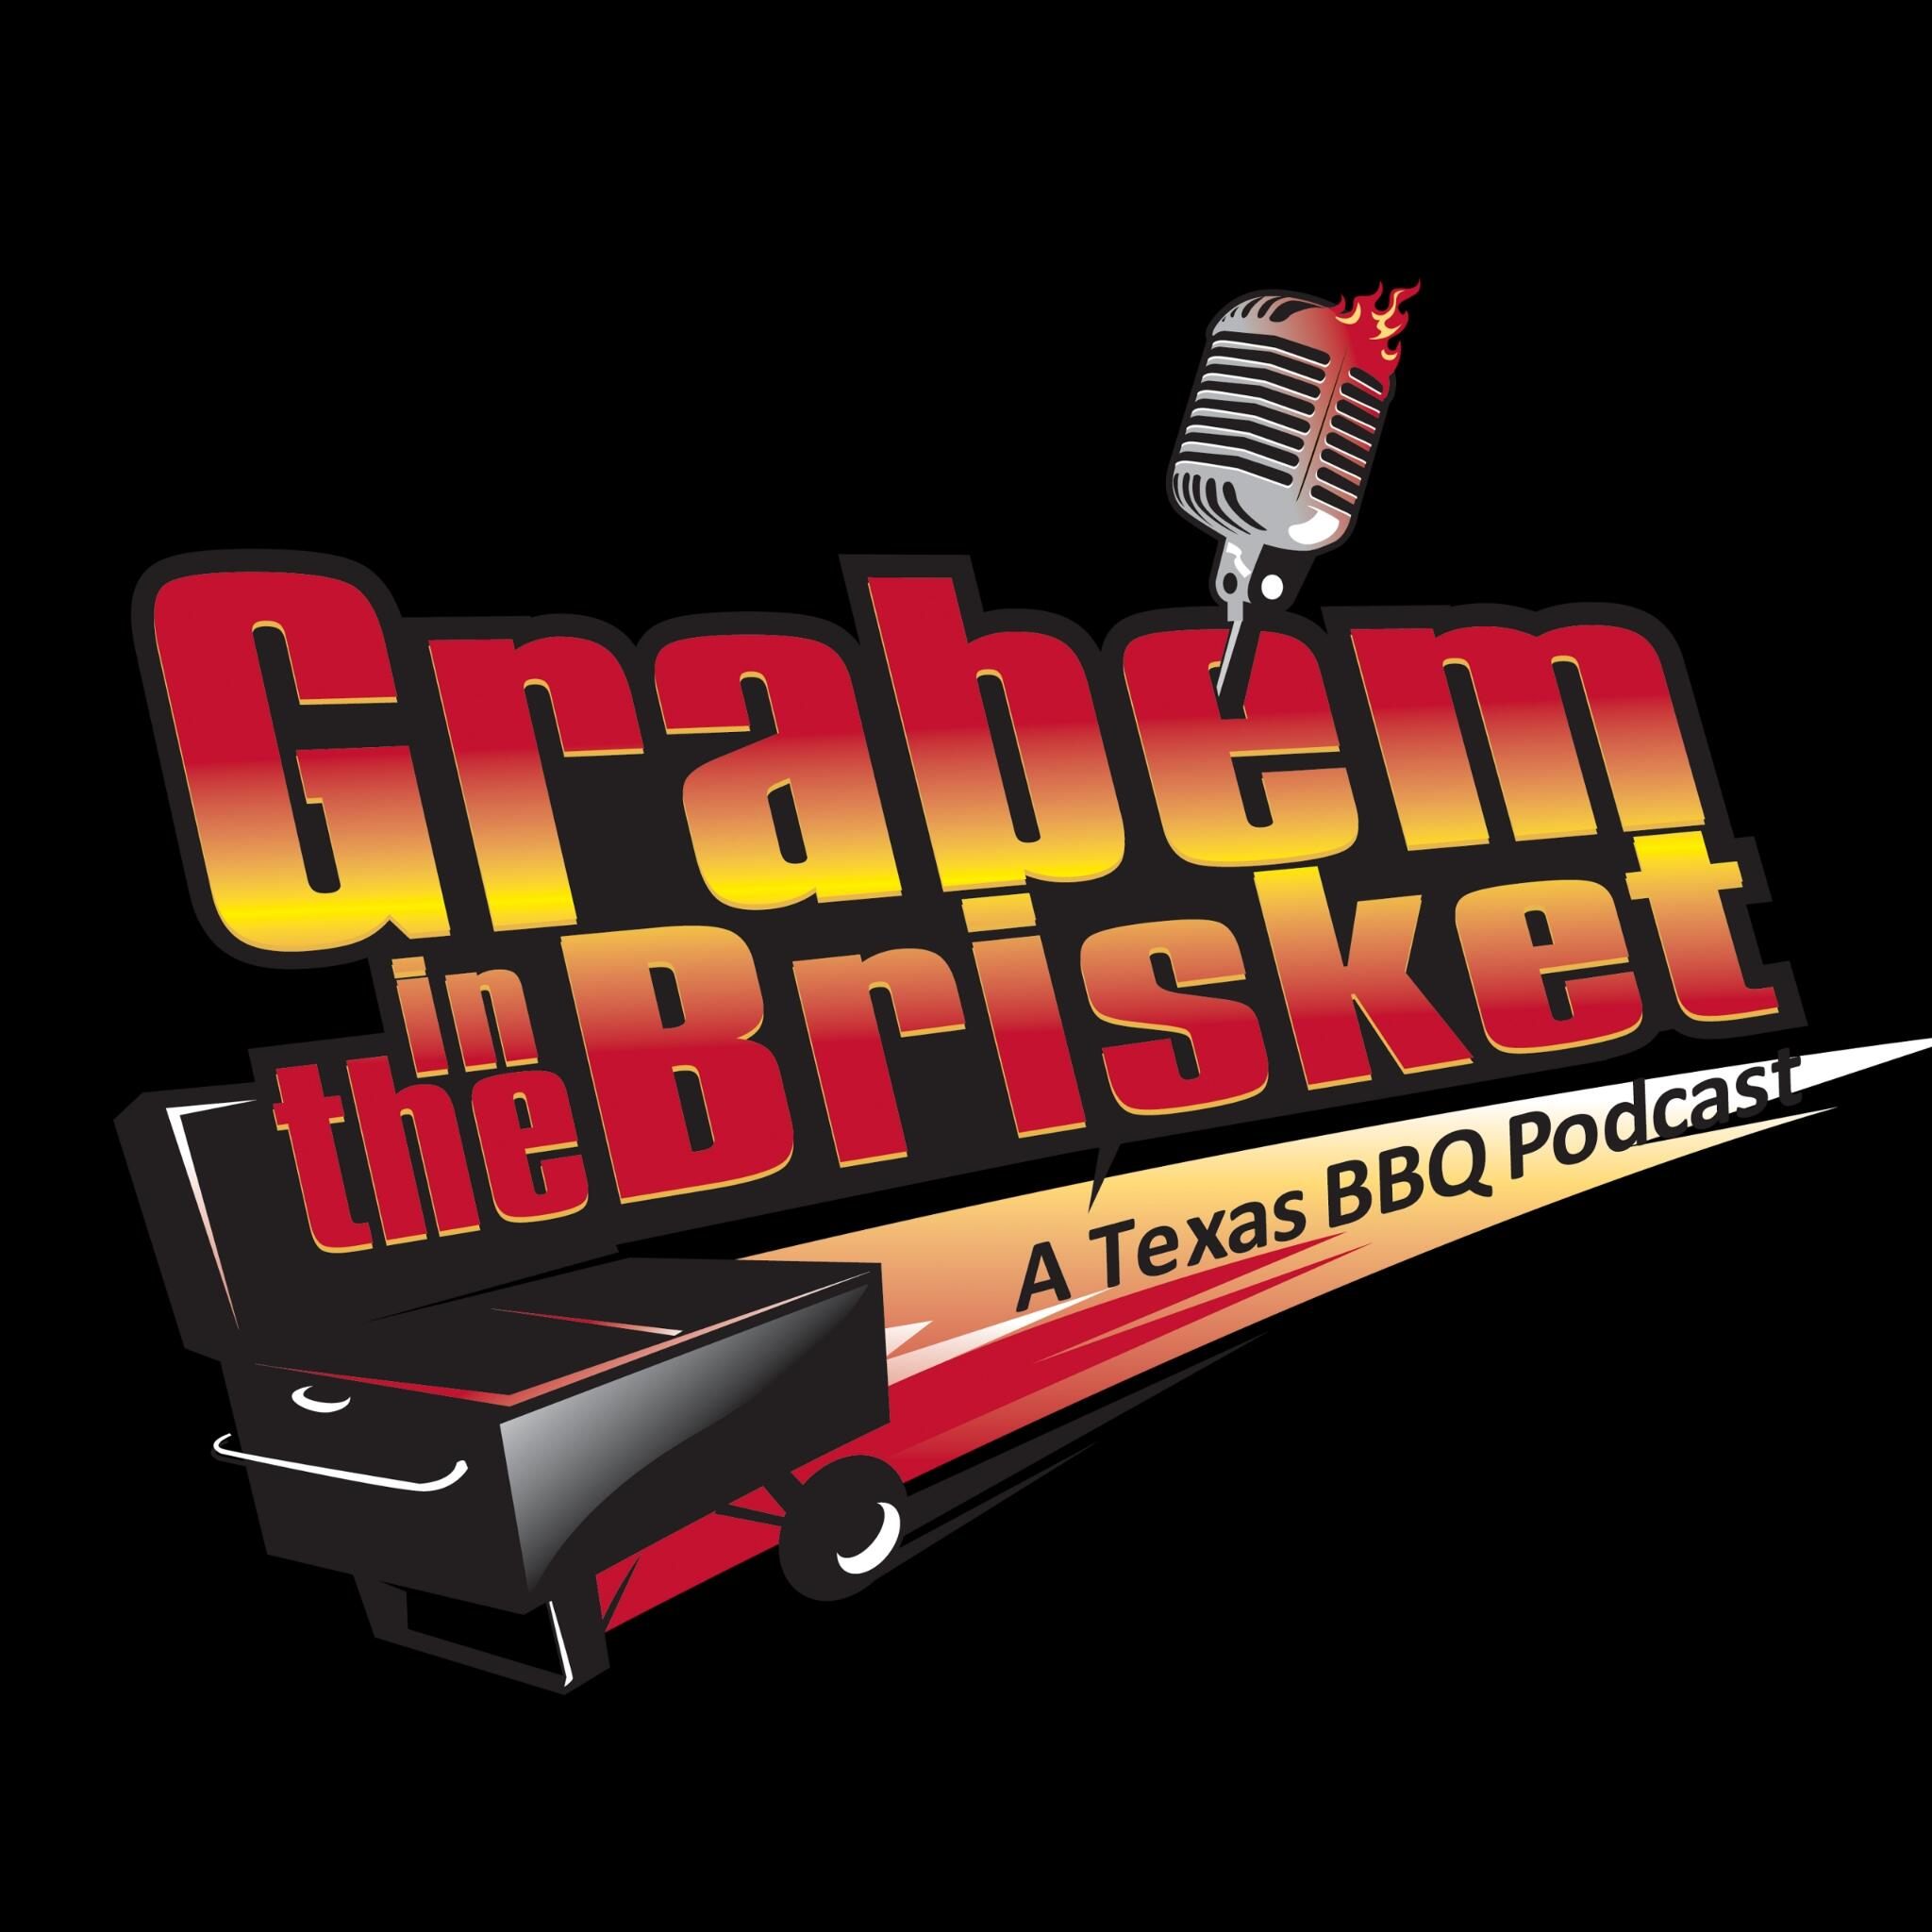 Listen to the Grab'em in the Brisket - A Texas BBQ Podcast Episode - Ep 60: Ashley Thompson is Creating a Legacy on iHeartRadio   iHeartRadio